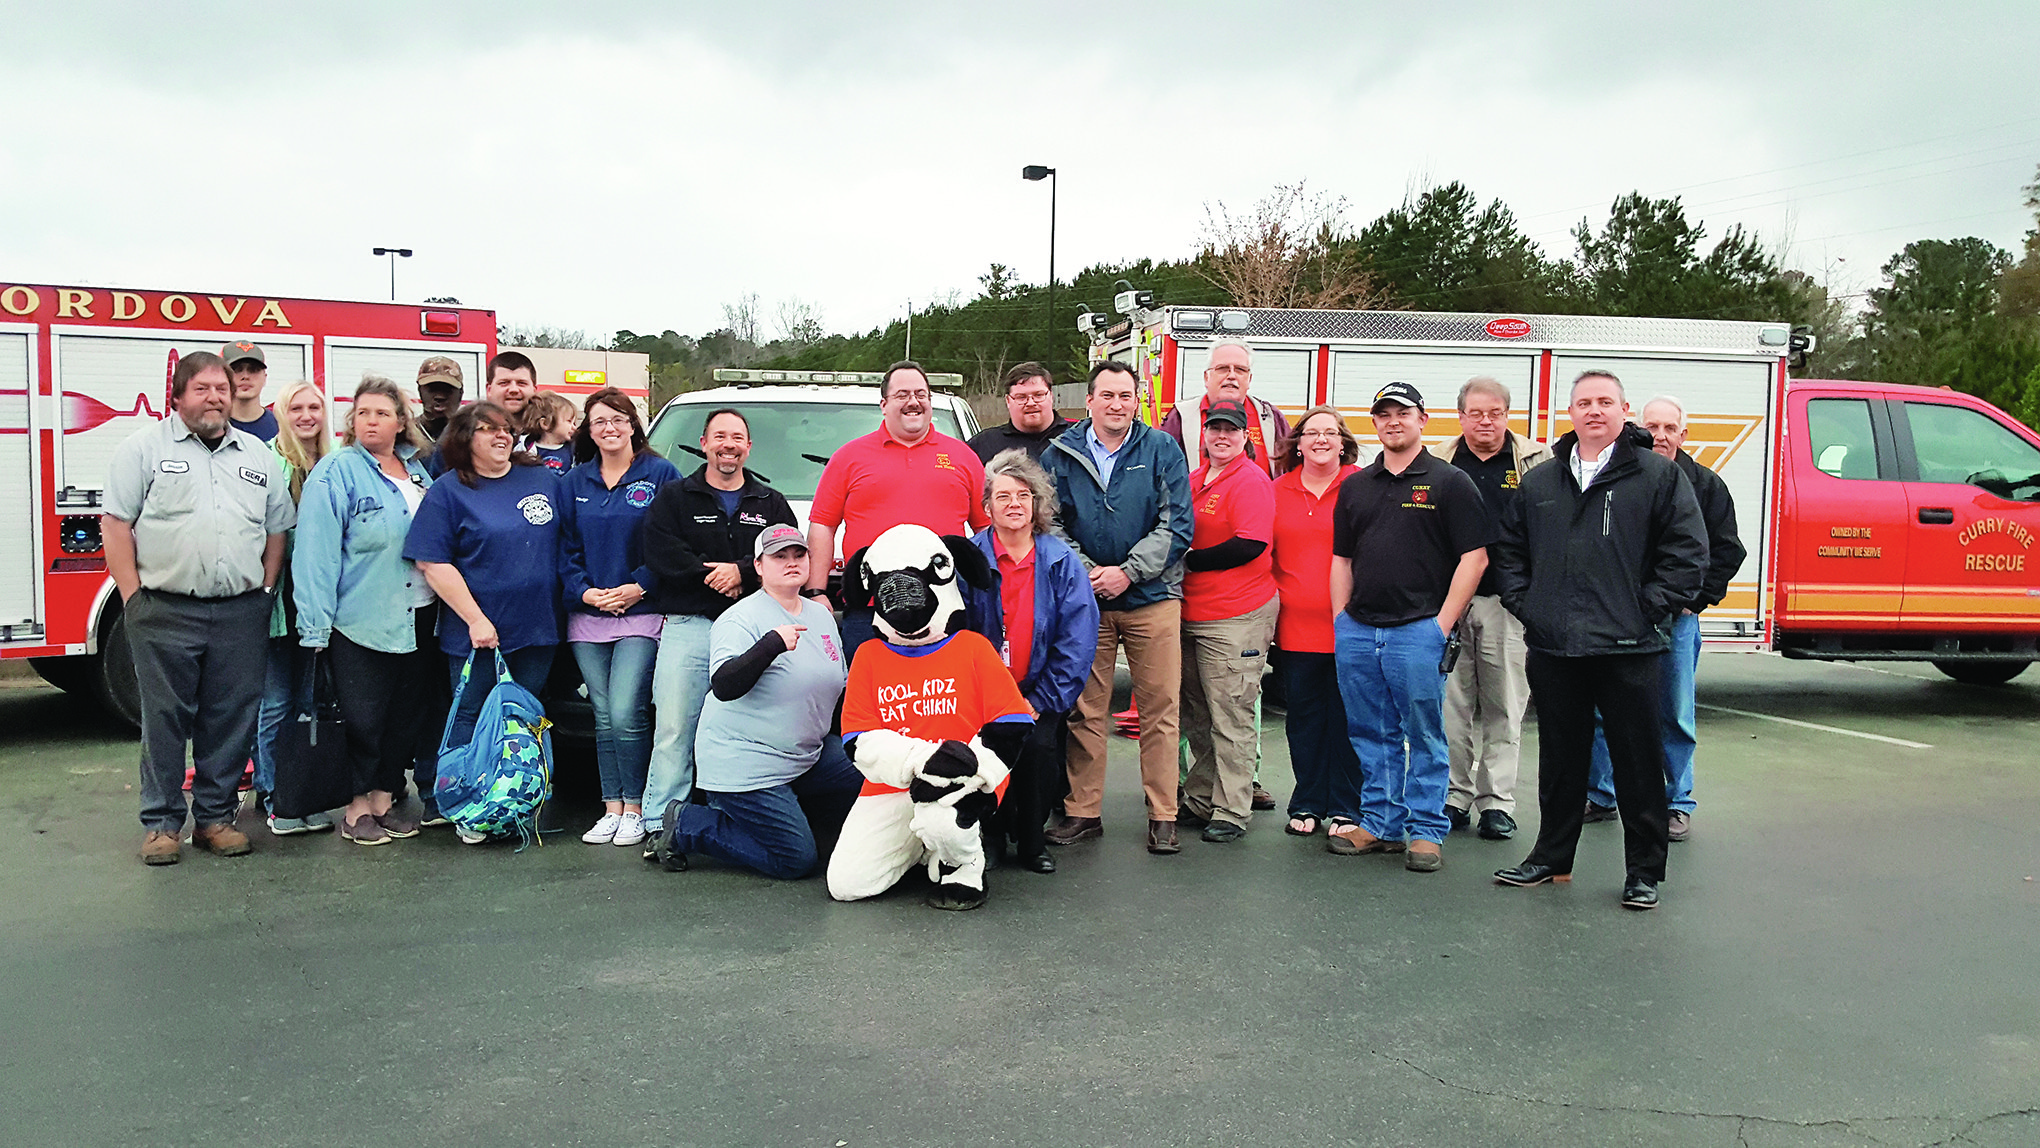 Members of the Cordova, Curry and Dora Fire Departments displayed vehicles at the second anniversary celebration of the Chik-fil-A Firefighter Aopreciation Day,  which is held quarterly at Chik-Fil-A.